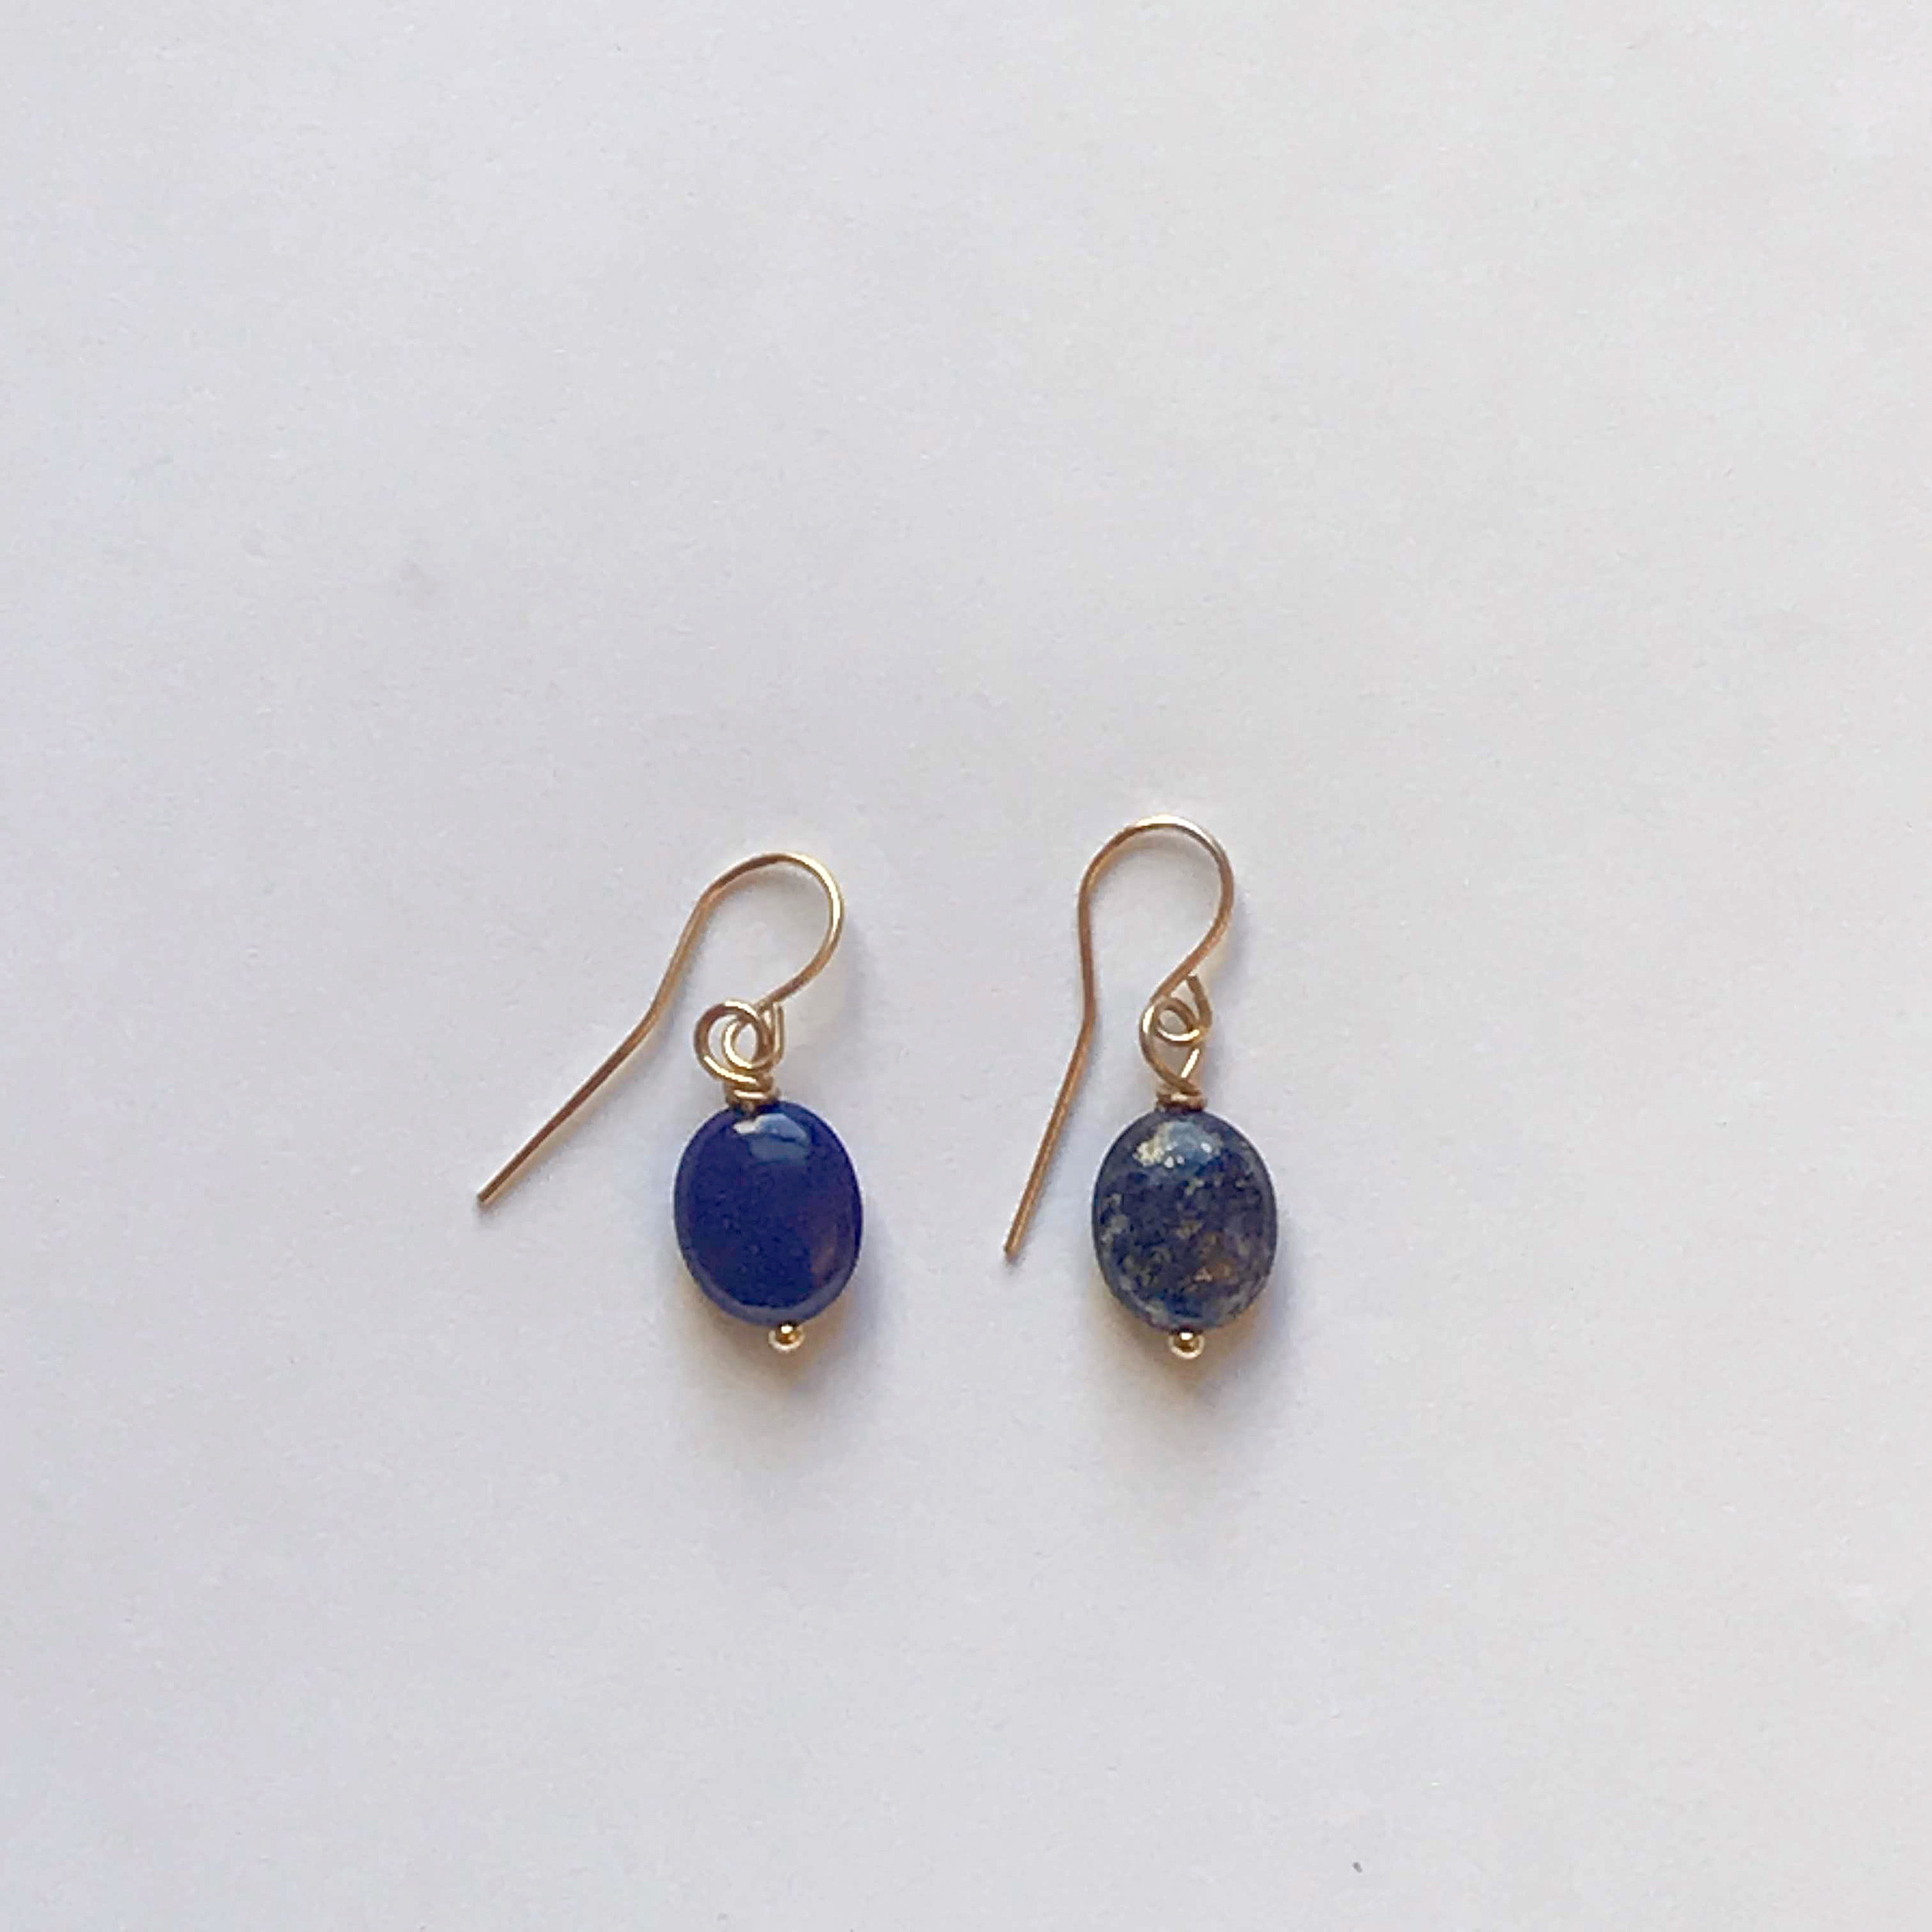 $75 Gold Filled Lapis Earrings